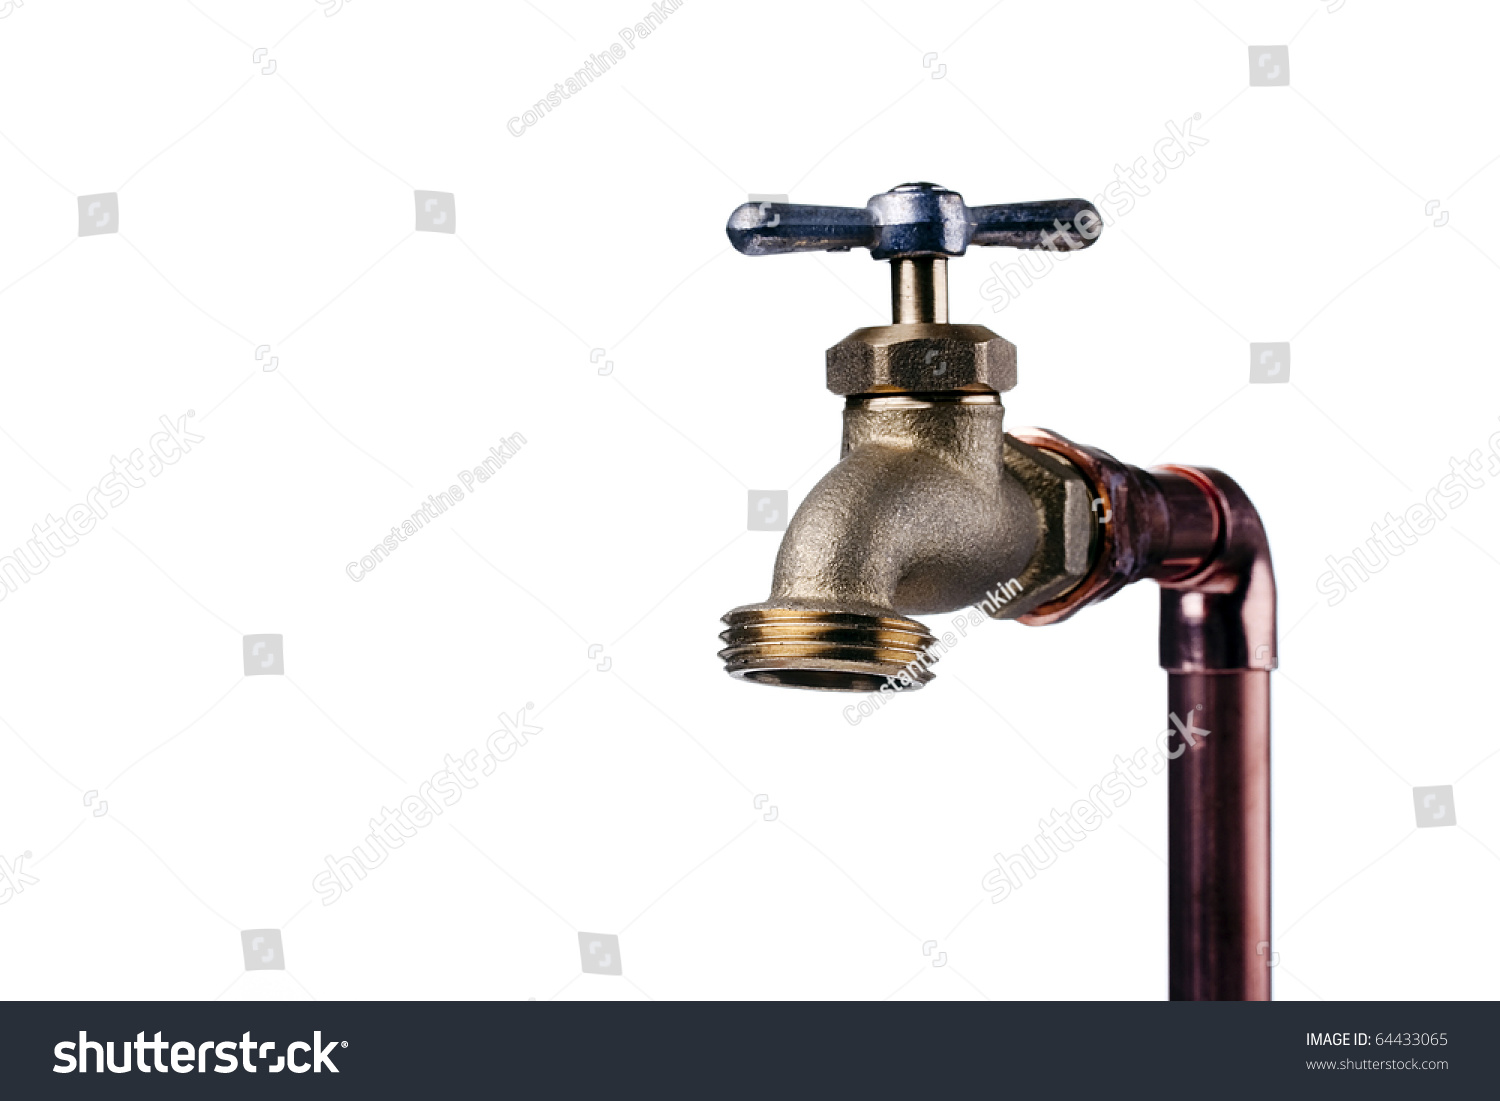 bronze faucet attached to the water system of copper pipes stock photo 64433065 shutterstock. Black Bedroom Furniture Sets. Home Design Ideas